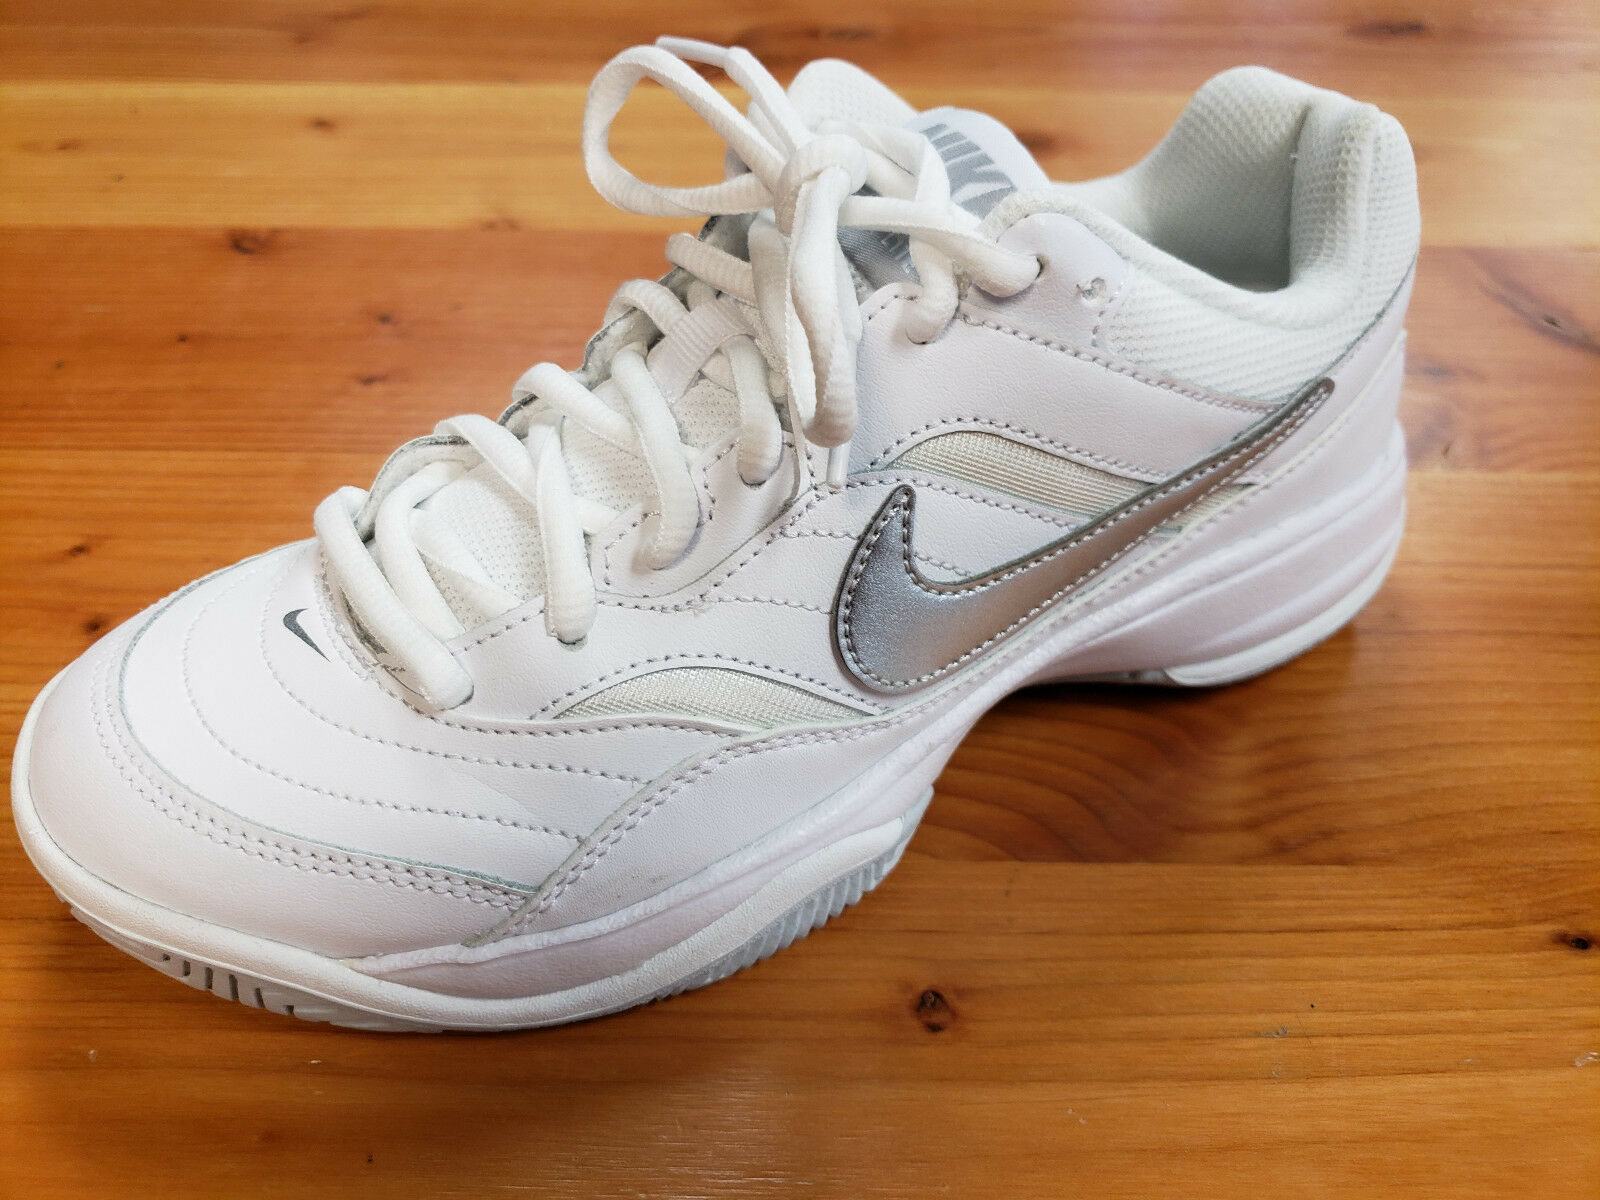 Women's Nike Court Lite Preowned Tennis shoes Size Size Size 7.5 d6658c